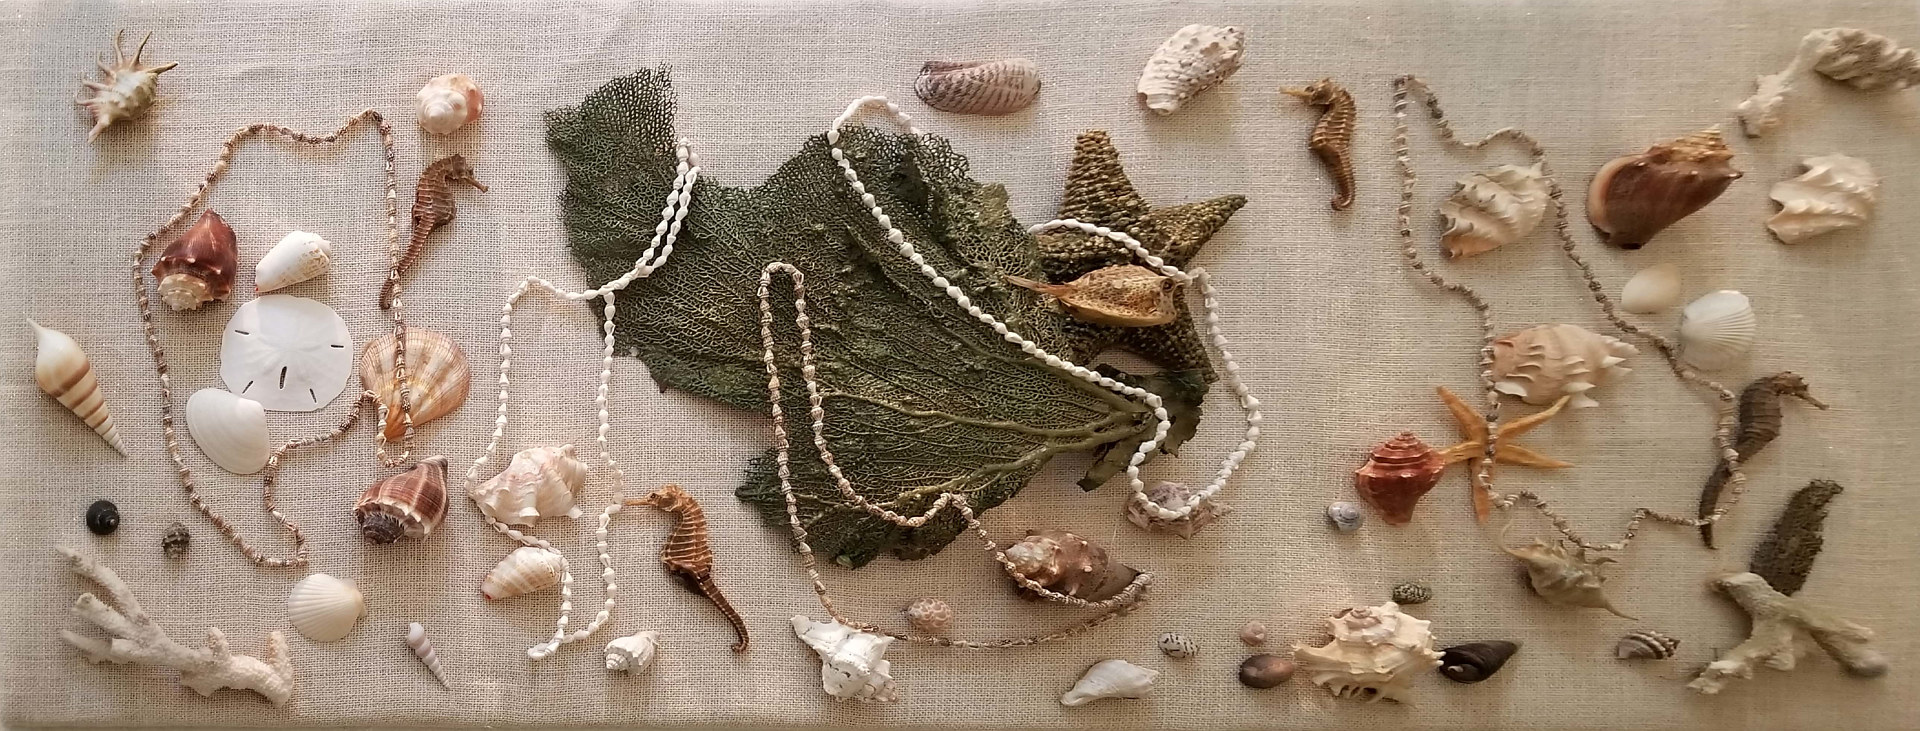 3D Seashell Collage by Jan Wirth